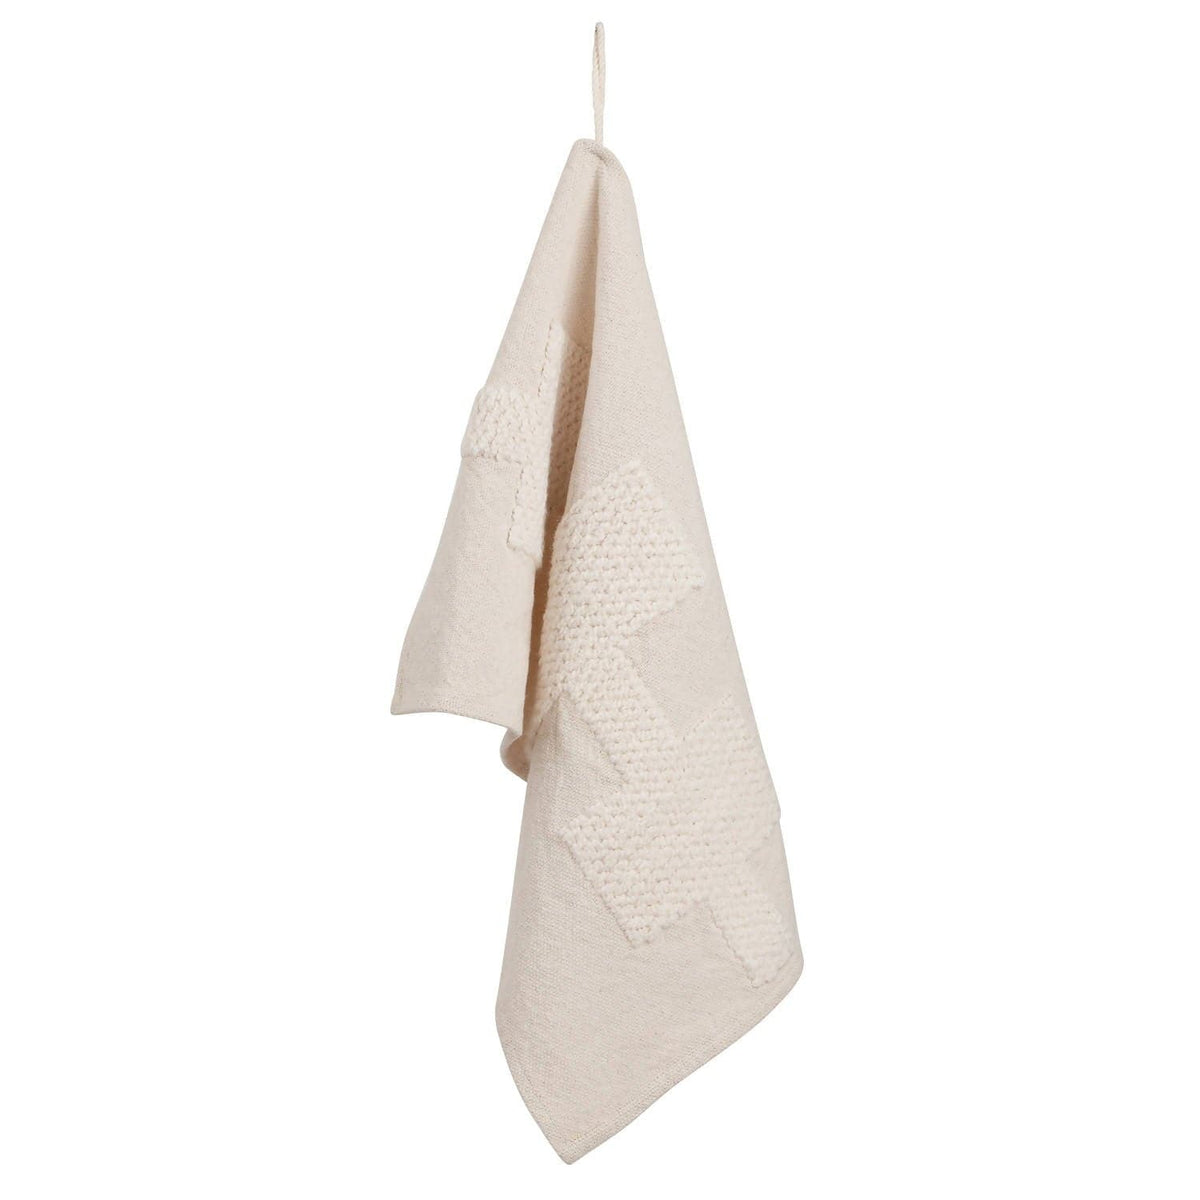 BARRAGAN HAND TOWEL